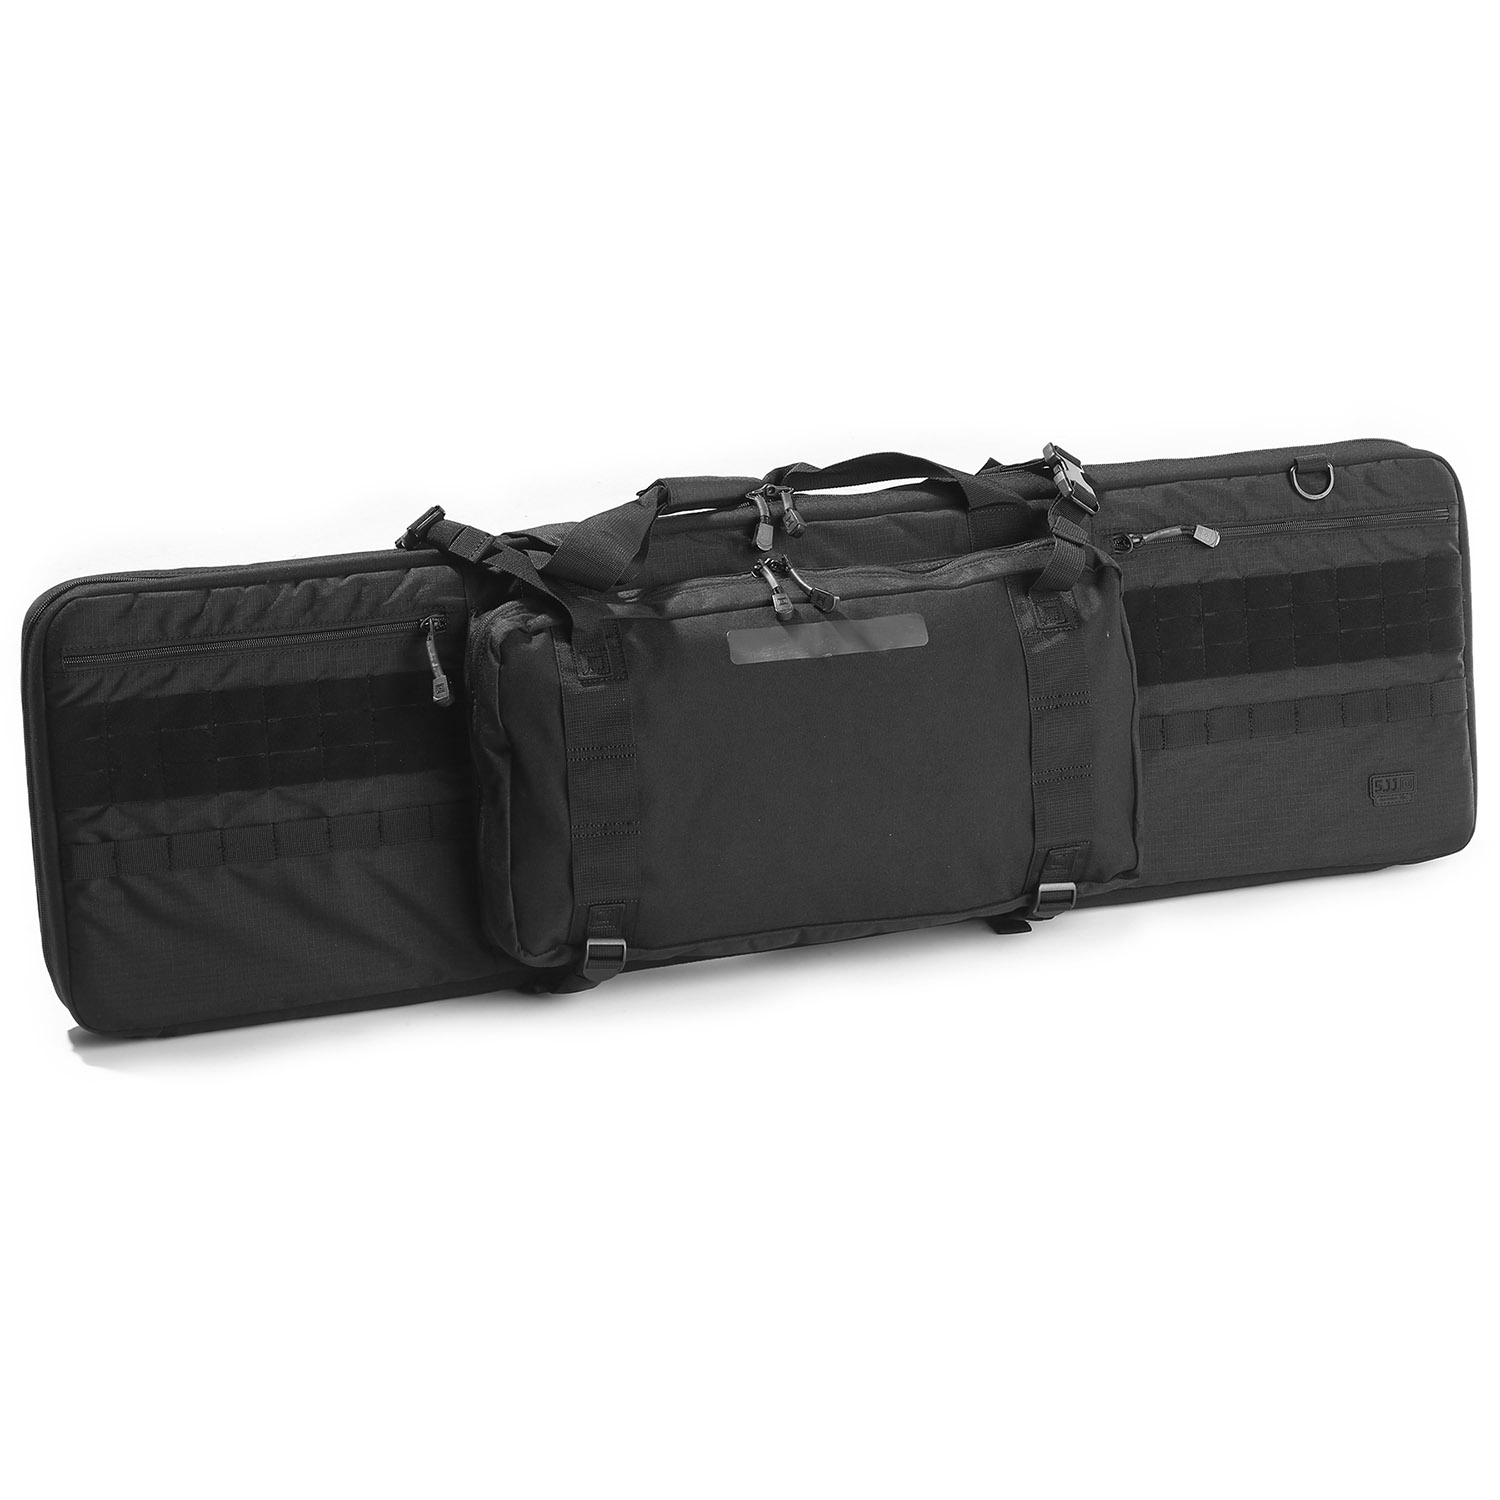 5.11 Tactical VTAC Mark II Double Rifle Case